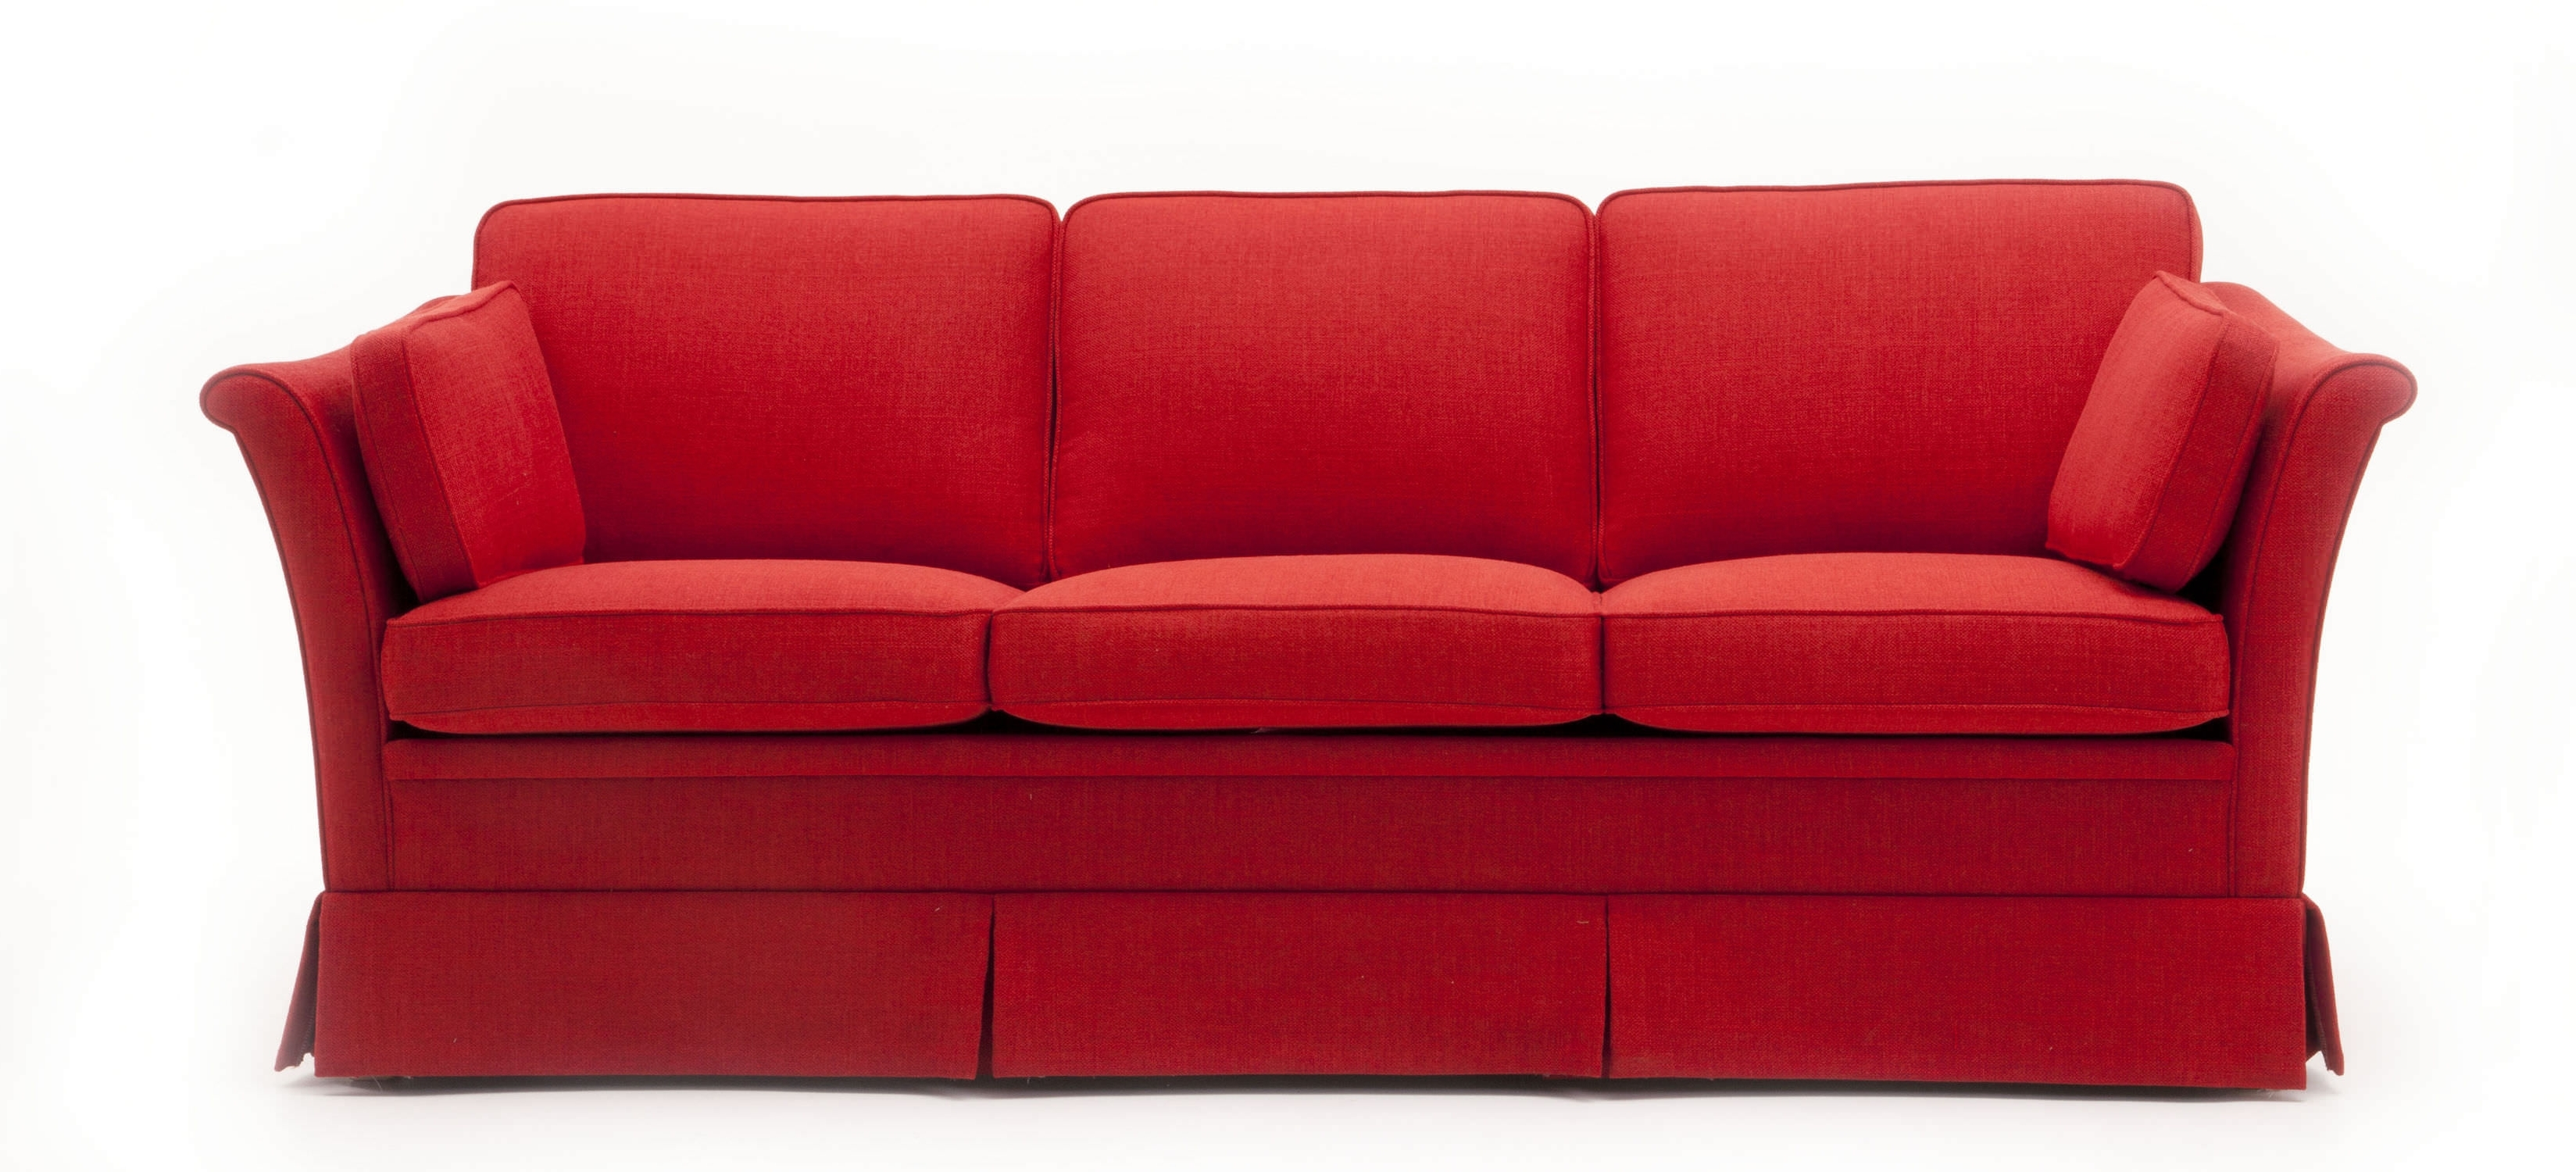 Well Known Traditional Sofa / Fabric / 3 Seater / With Removable Cover With Regard To Sofas With Removable Cover (View 20 of 20)